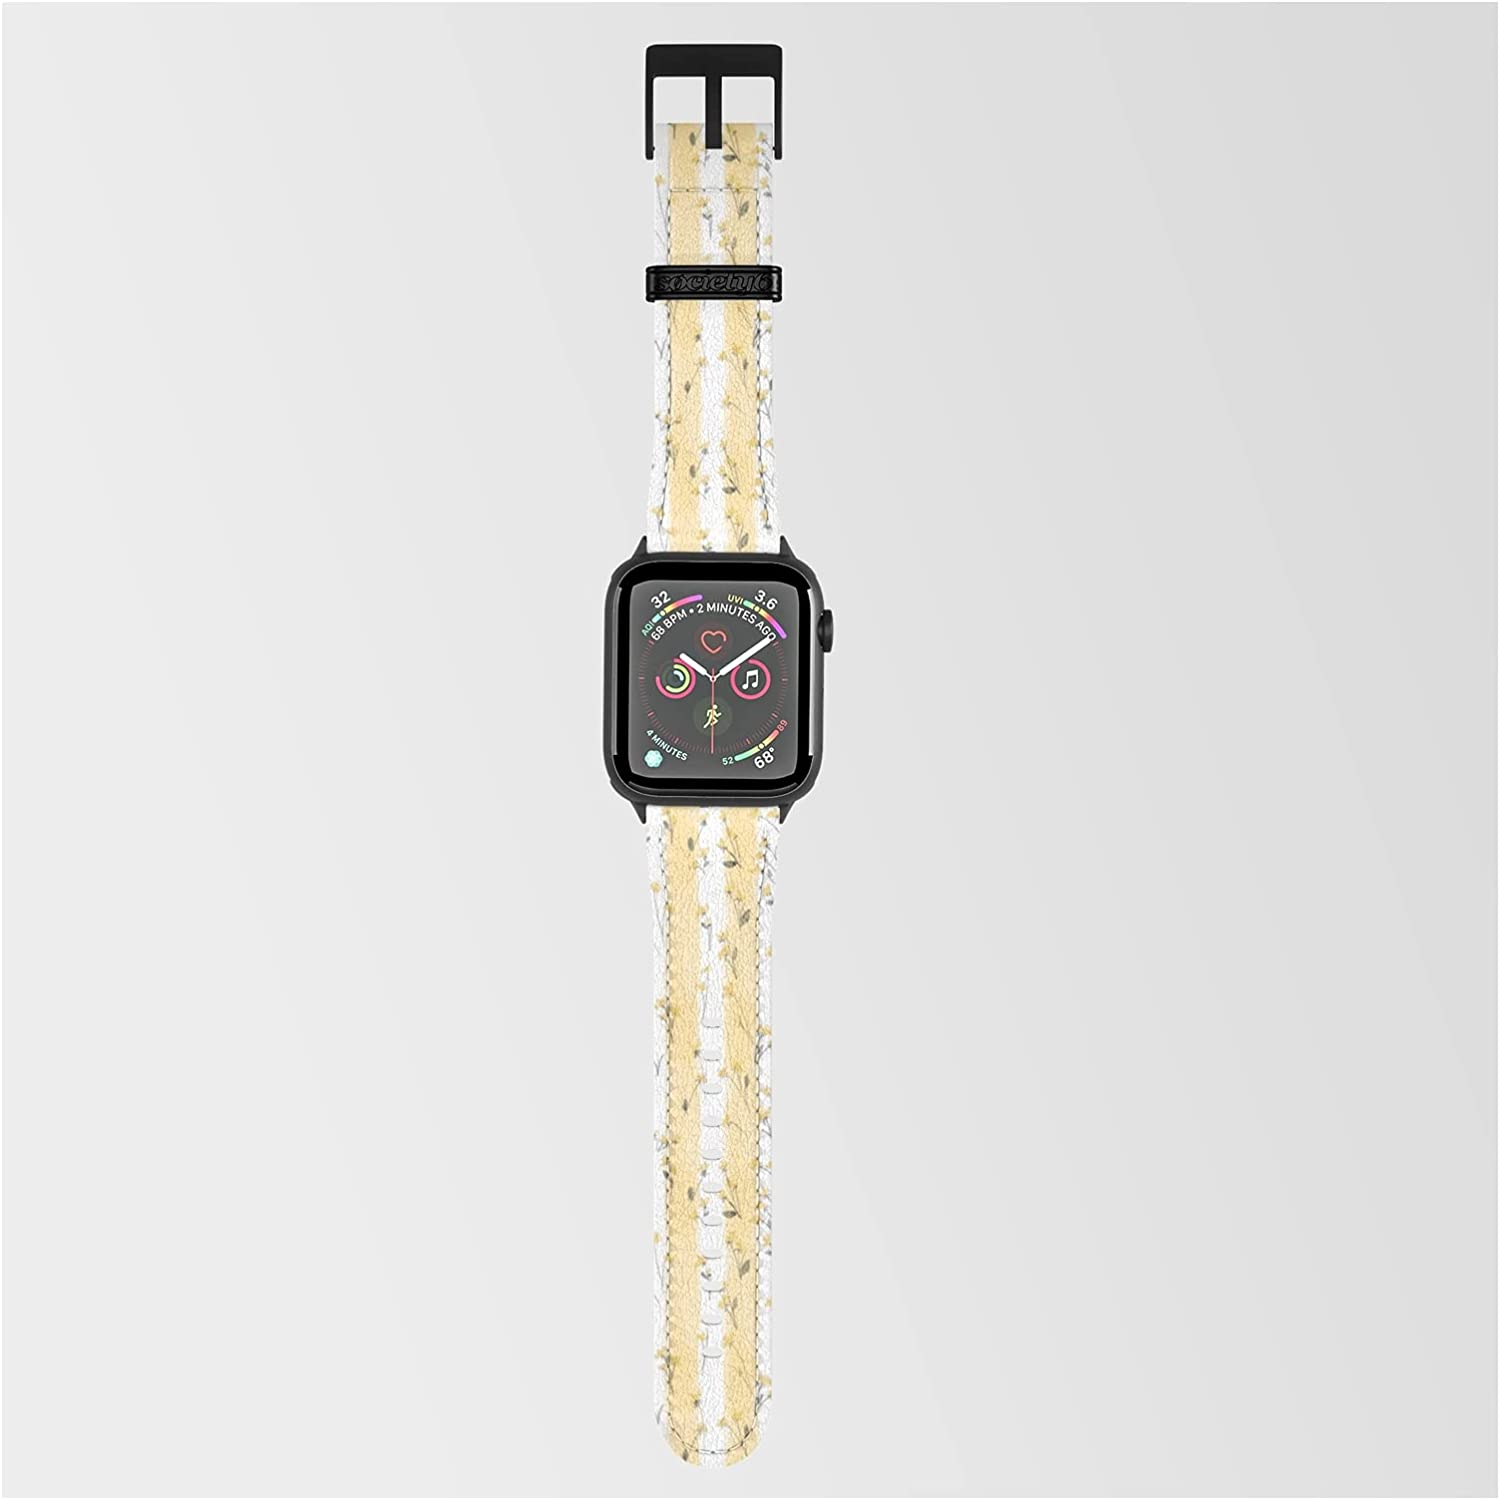 Buttercup Yellow Flower Blossoms On Butter Yellow Streaky Stripes by Podartist on Smartwatch Band